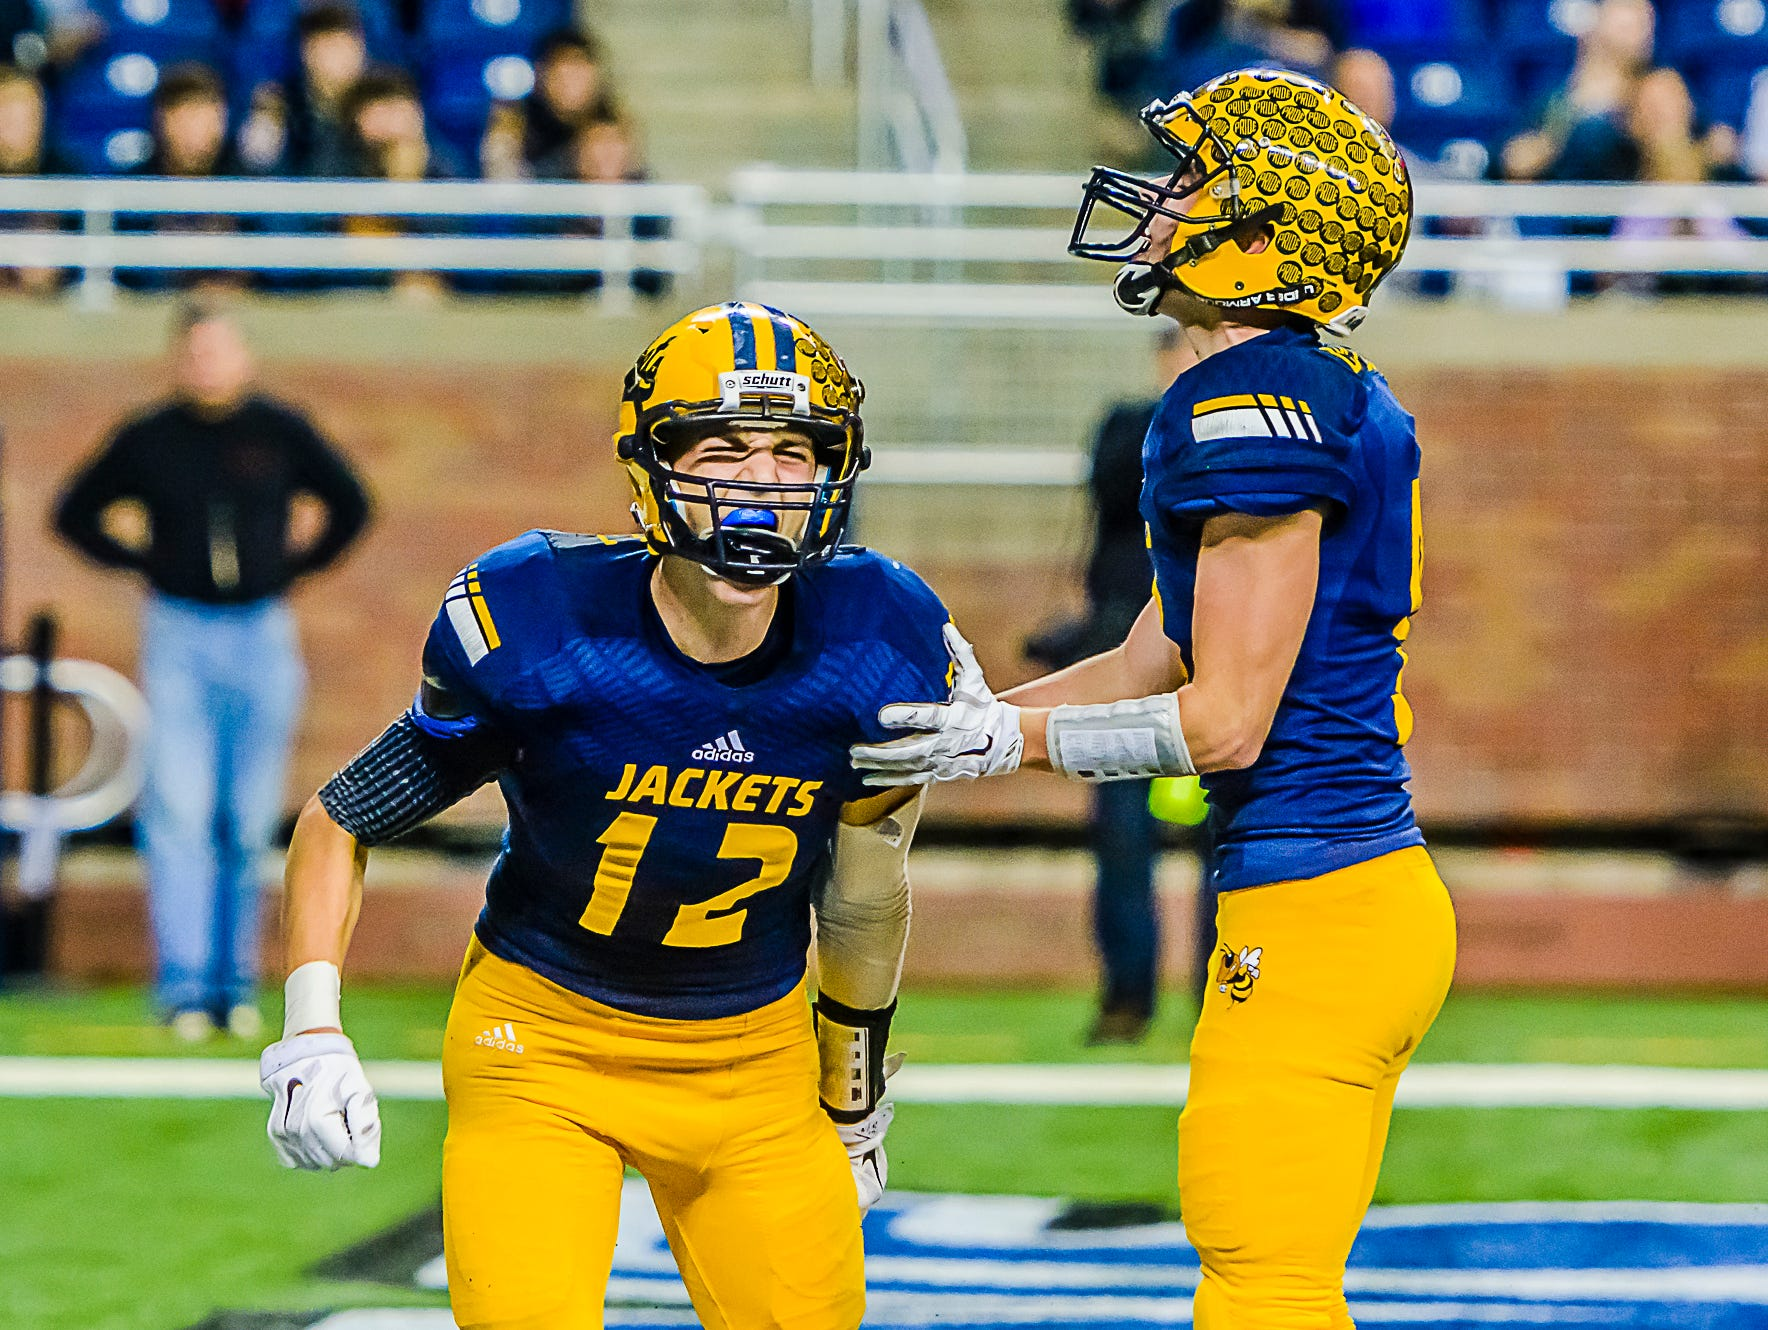 Spence DeMull ,12, of Ithaca celebrates with teammate Colton Campbell after DeMull scored late in the 3rd quarter to tie the score at 13.